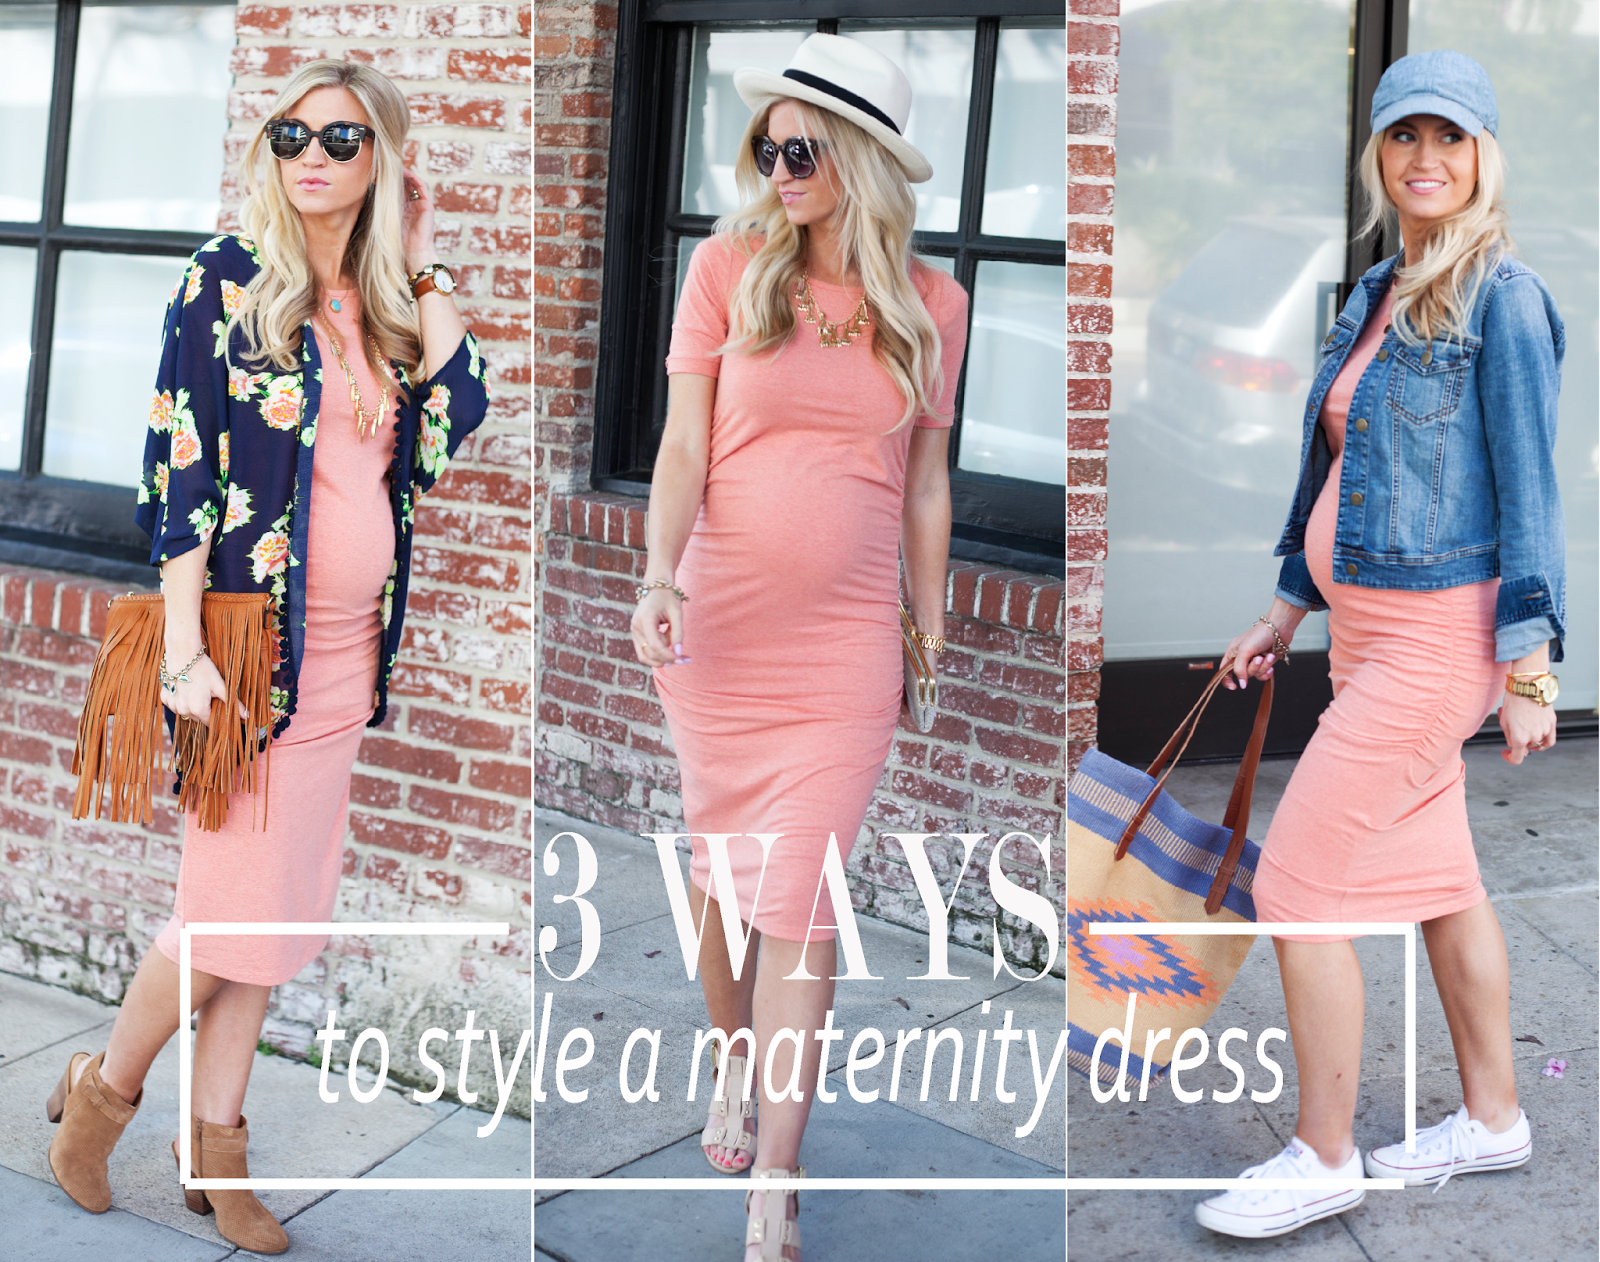 Elle Apparel: 3 WAYS TO STYLE A MATERNITY DRESS | Fabulous ...